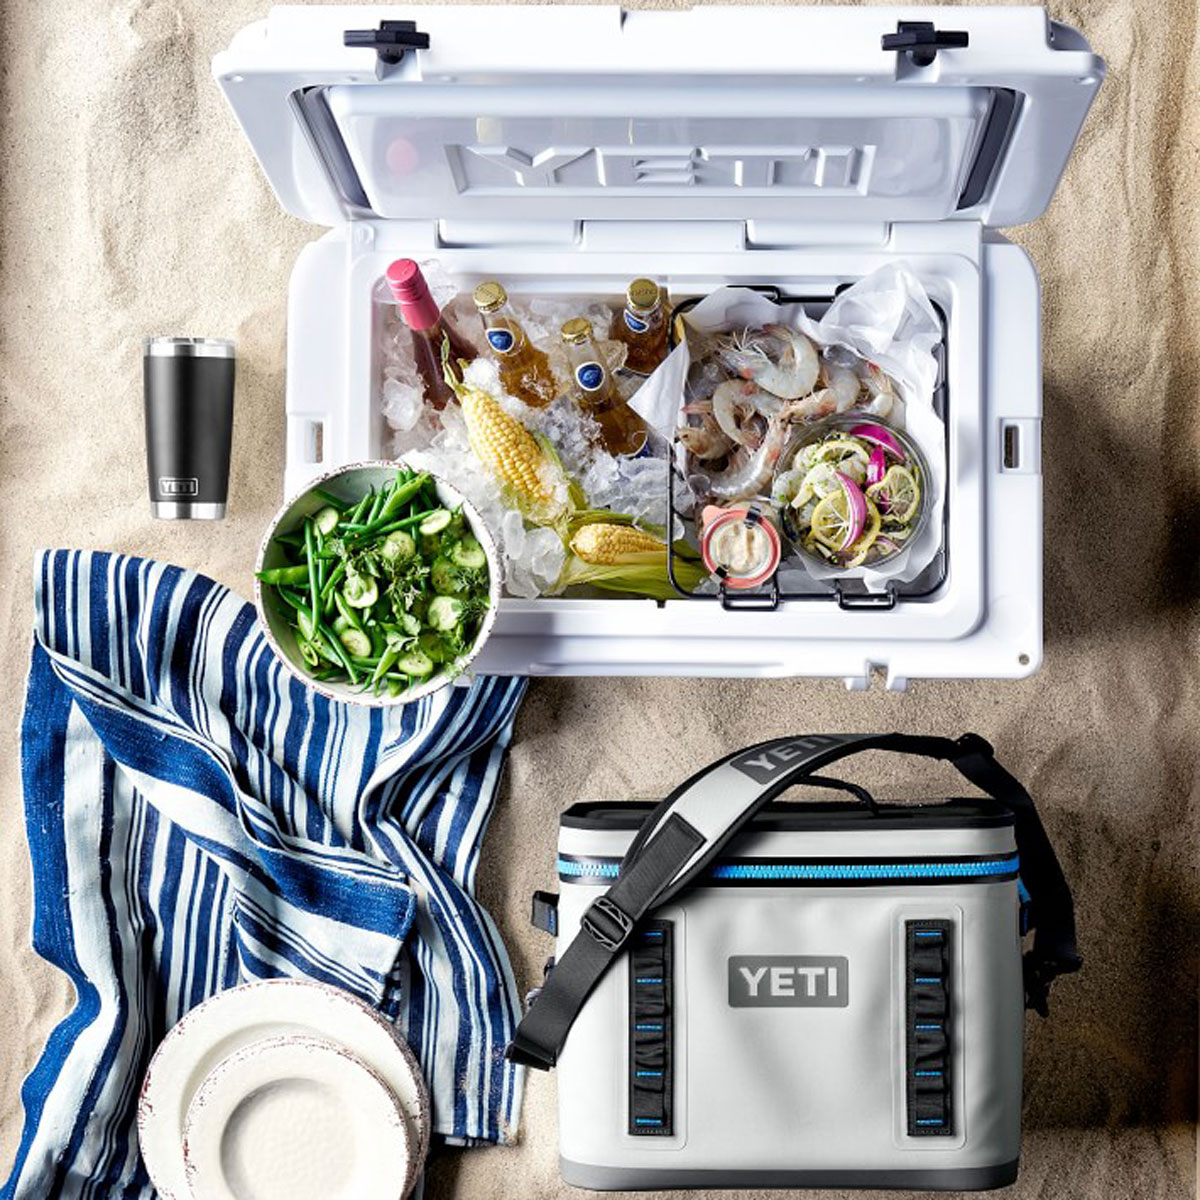 fathers day gifts yeti coolers